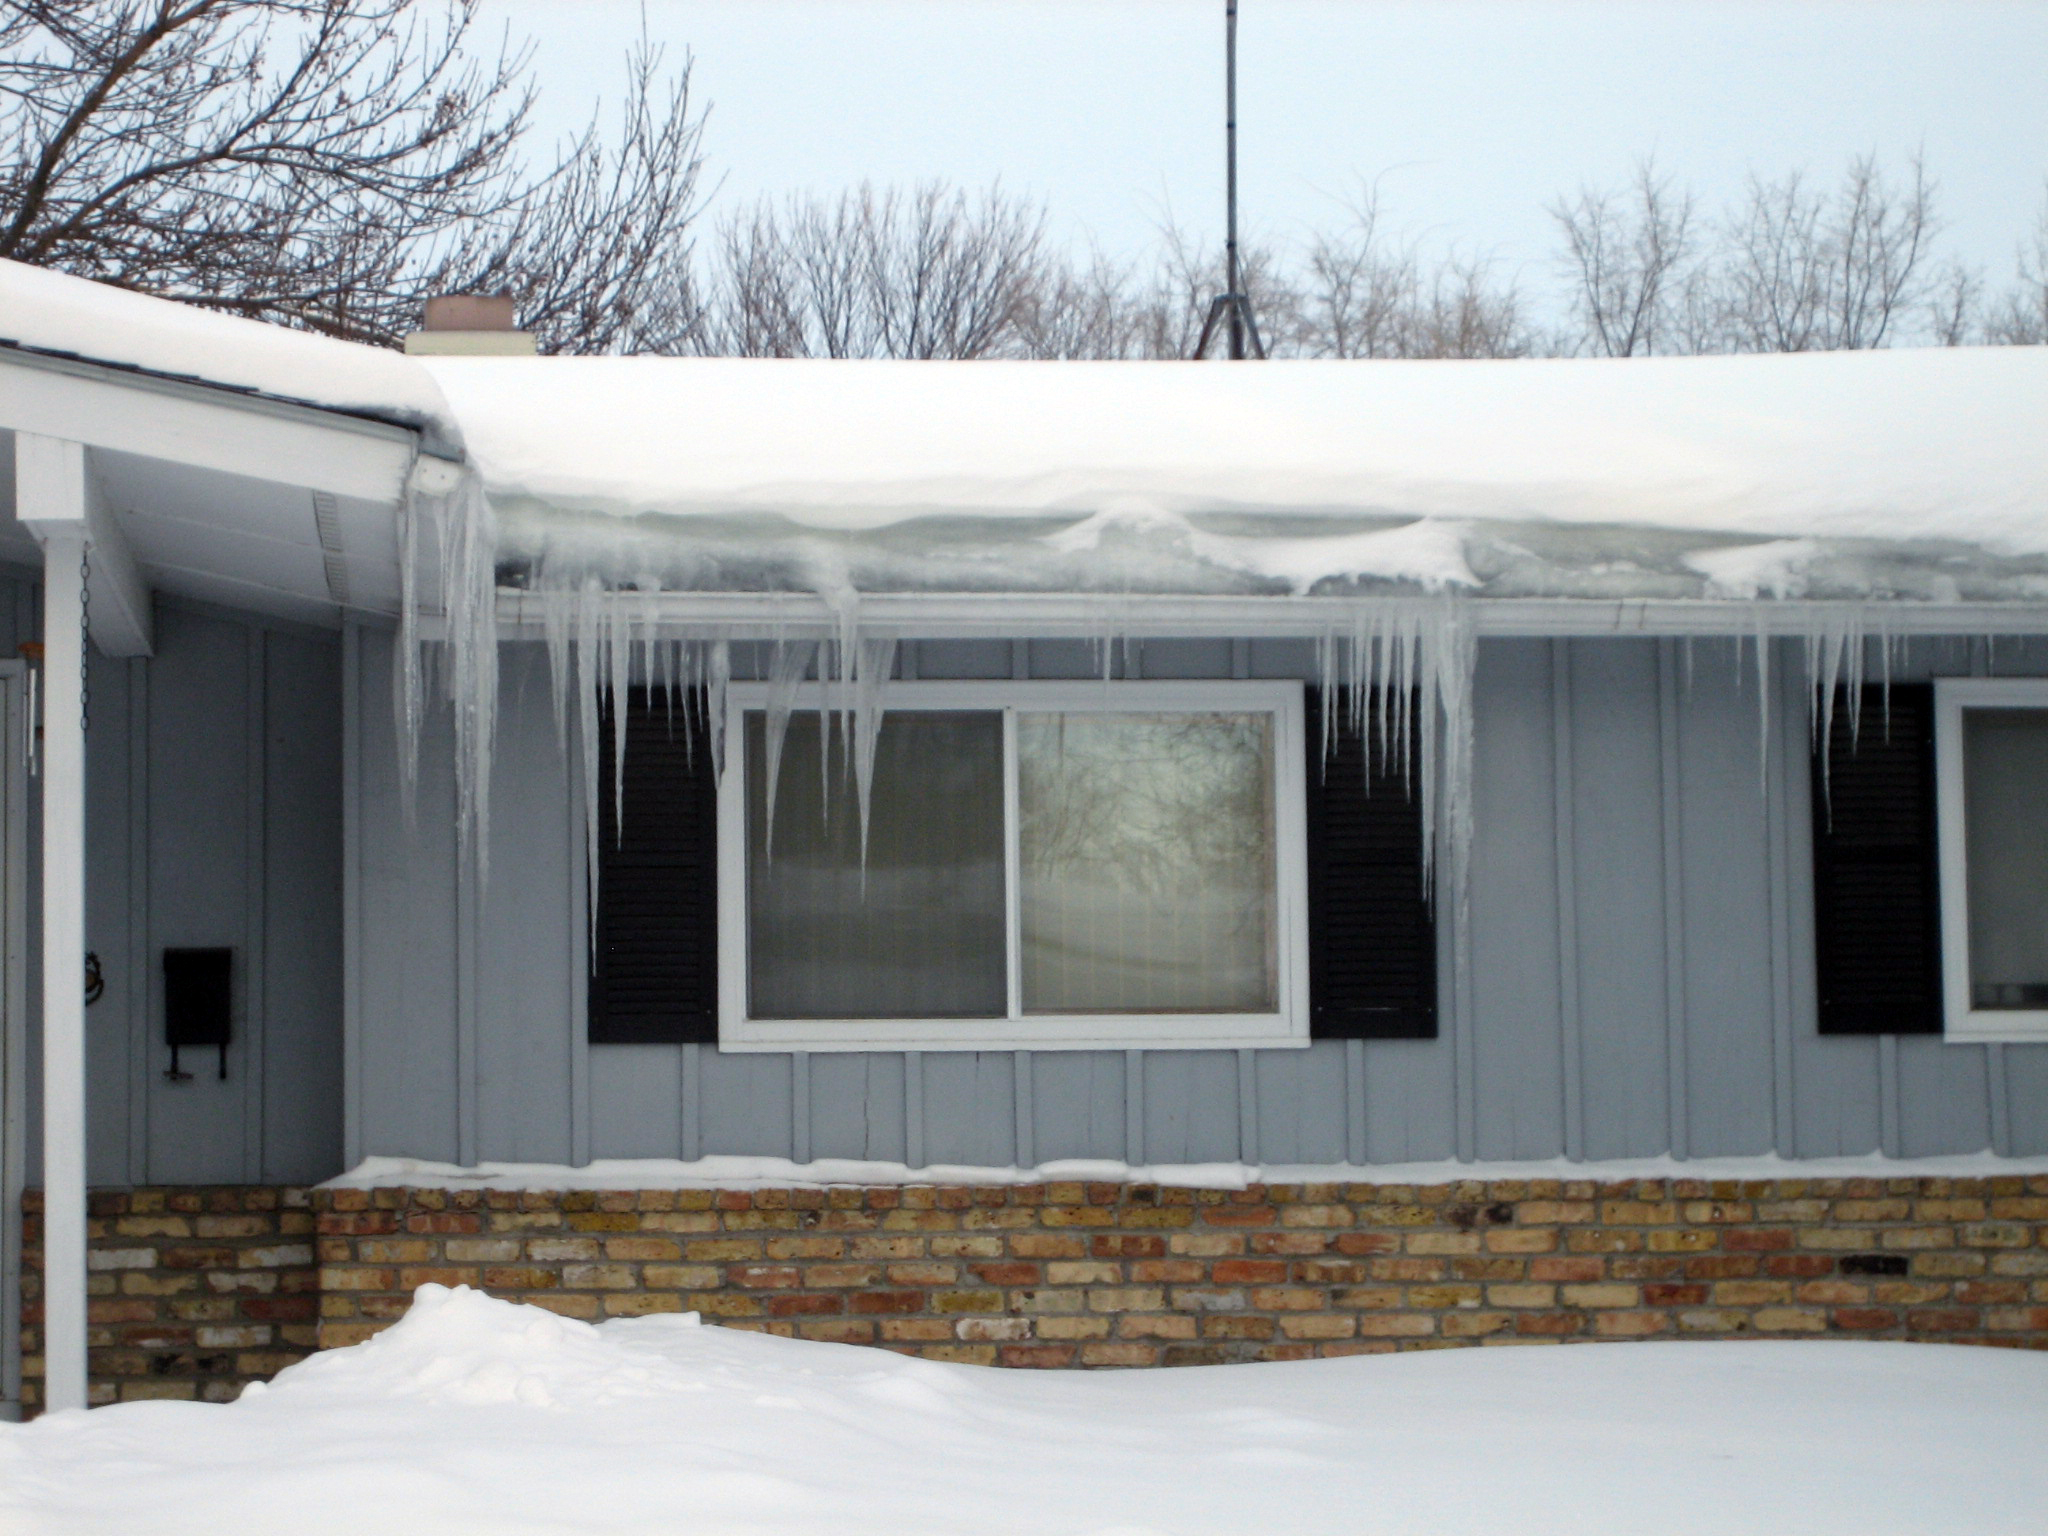 ice dams on a house roof